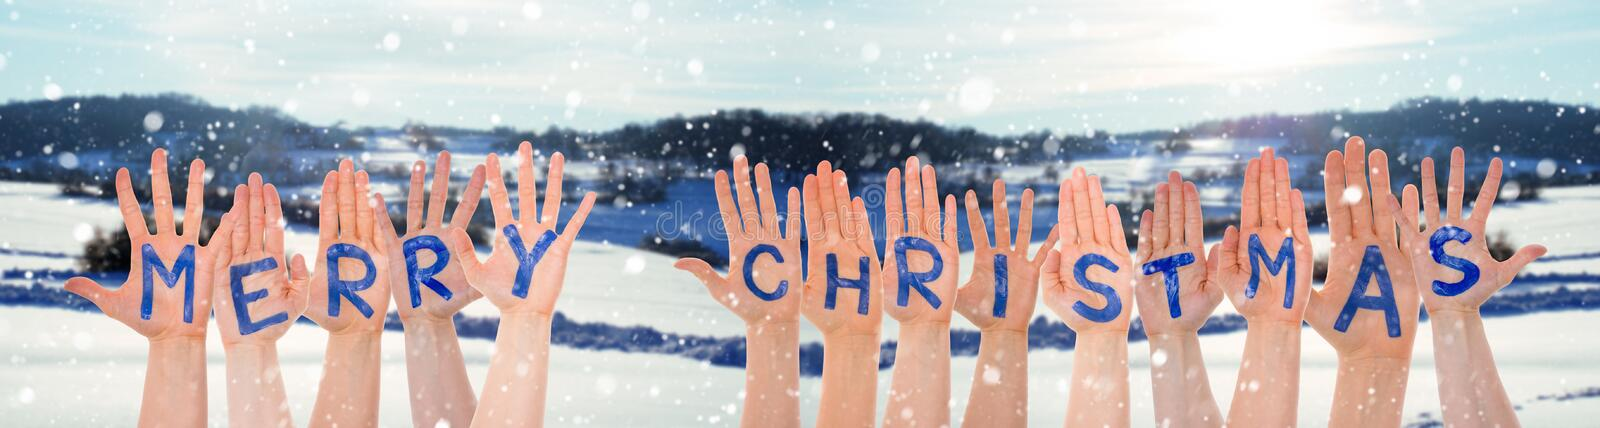 Many Hands Building Word Merry Christmas, Winter Scenery As Background. Many Hands Building English Word Merry Christmas. Beautiful Snowy Winter Landscape With royalty free stock photos